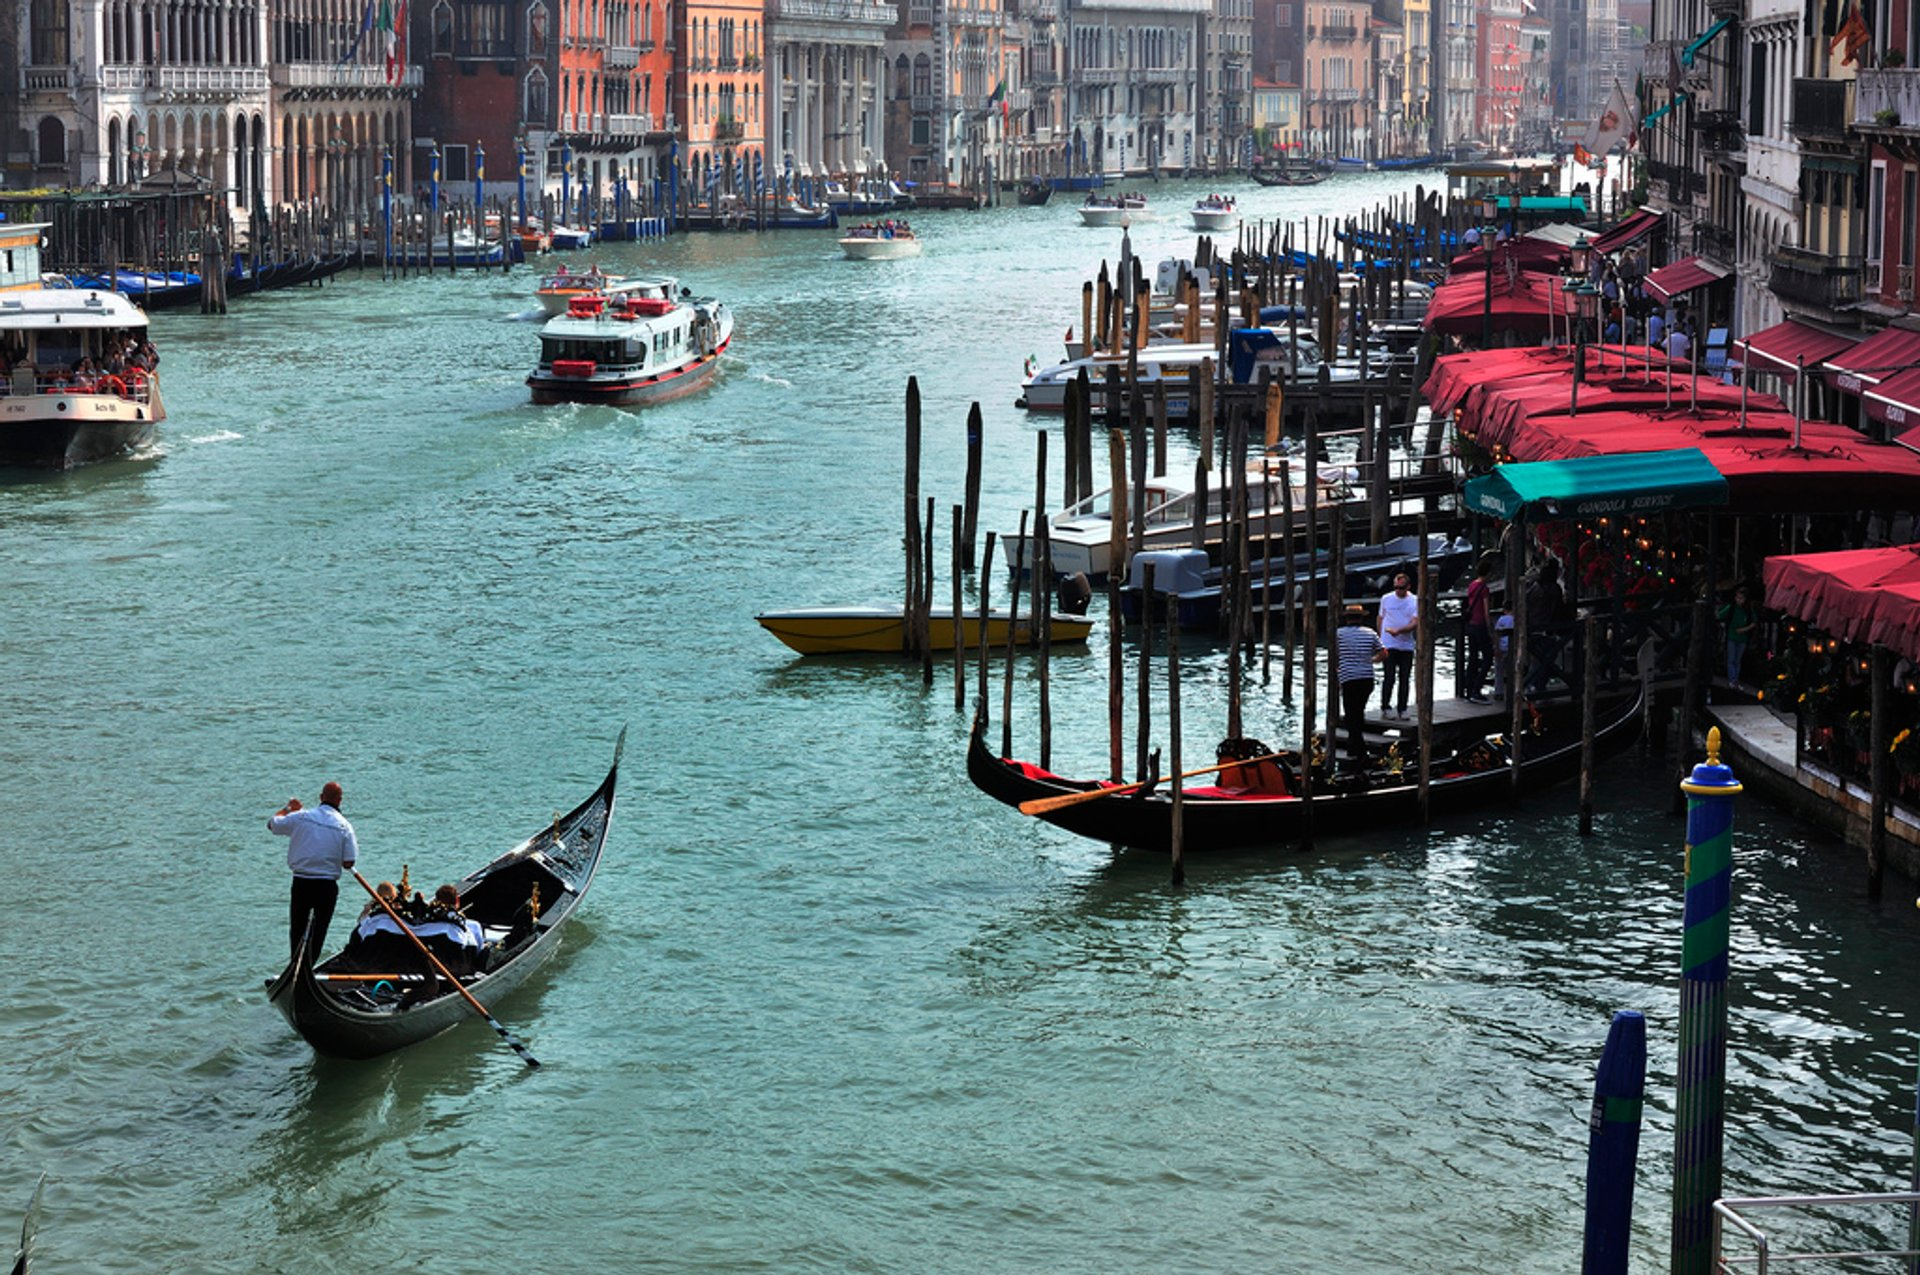 Gondola Rides in Venice 2020 - Best Time